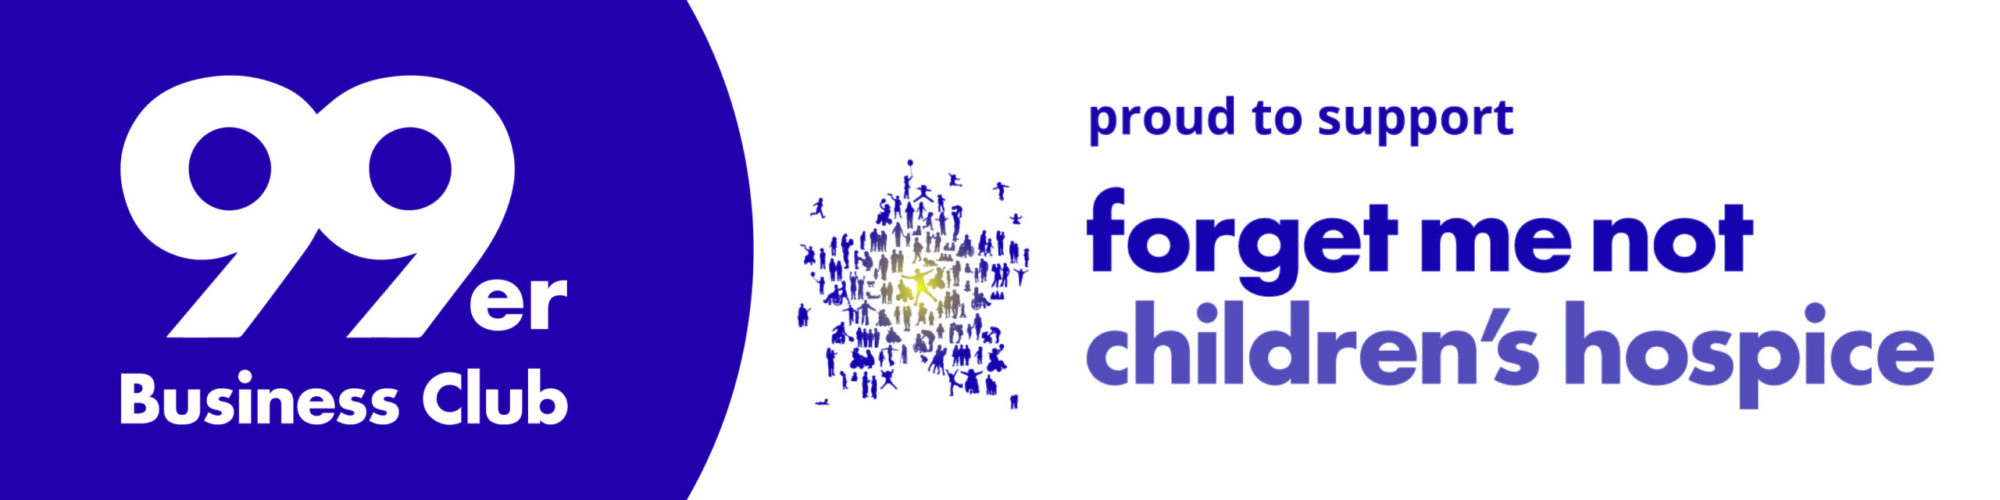 99er Business Club - supporting Forget Me Not Children's Hospice